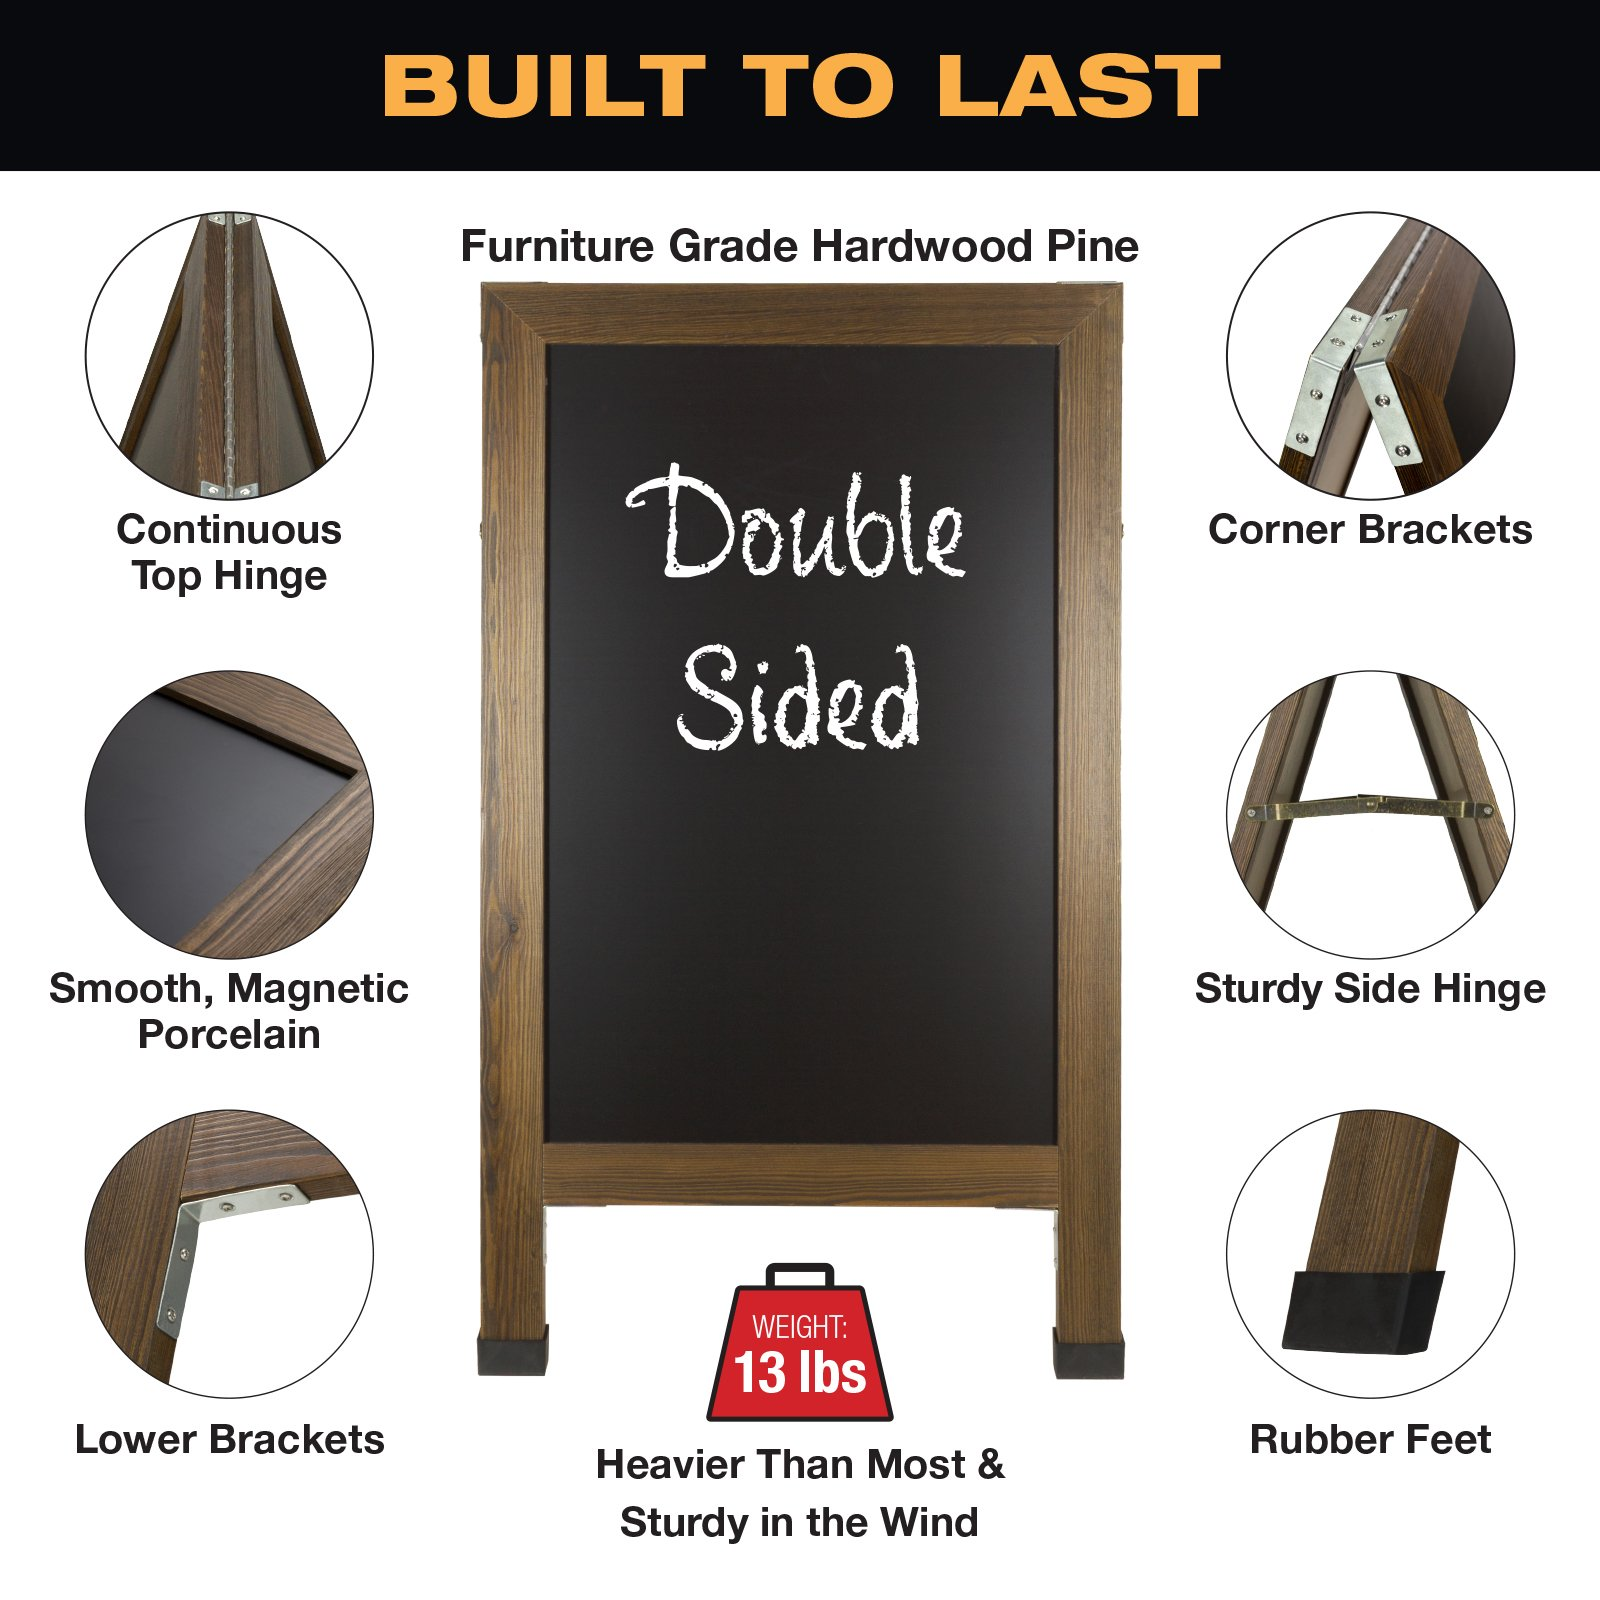 Sandwich Board Sidewalk Chalkboard Sign: REINFORCED, HEAVY-DUTY / 10 CHALK MARKERS / 40 PIECE STENCIL SET / CHALK / ERASER / DOUBLE SIDED / LARGE 40x23 Chalk Board Standing Sign A-Frame (Rustic) by Excello Global Products (Image #4)